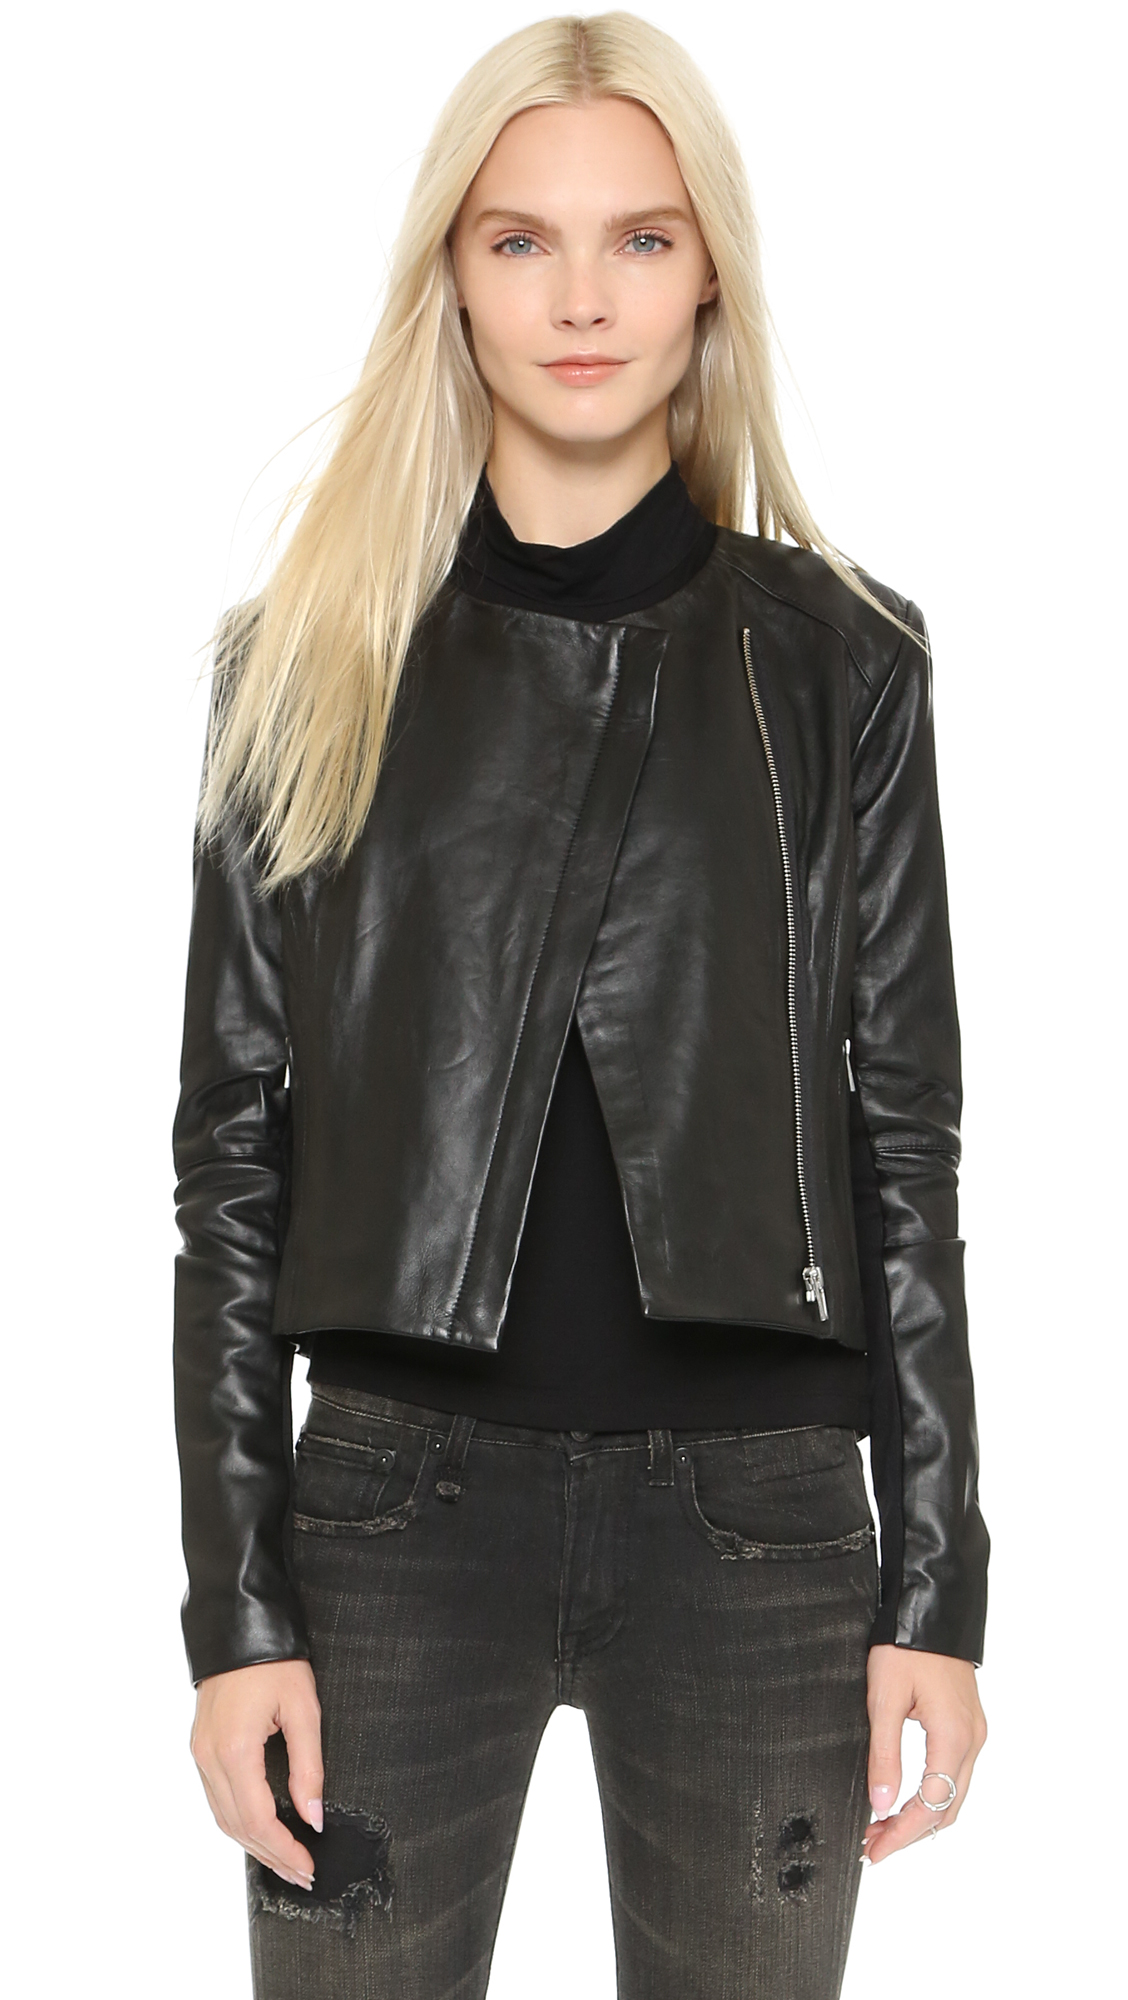 VEDA Dali Classic Leather Jacket - Black